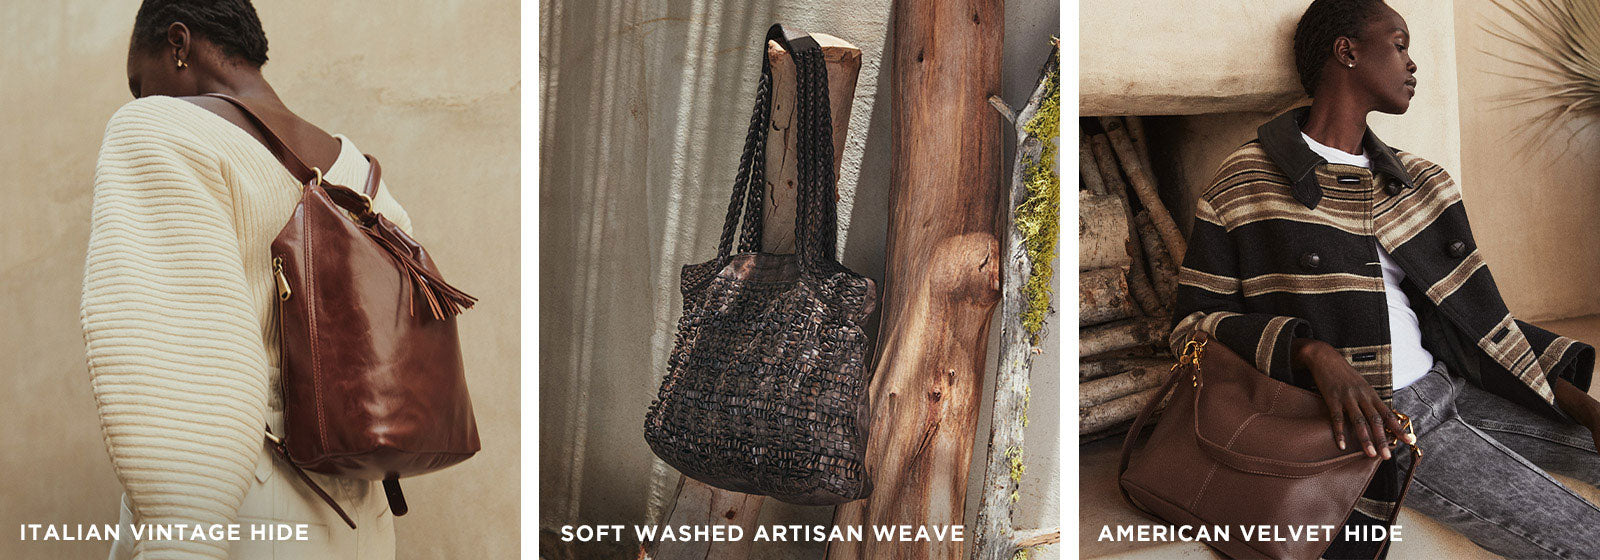 Shop New Fall Colors, introducing new leather handbags and wallets for Fall